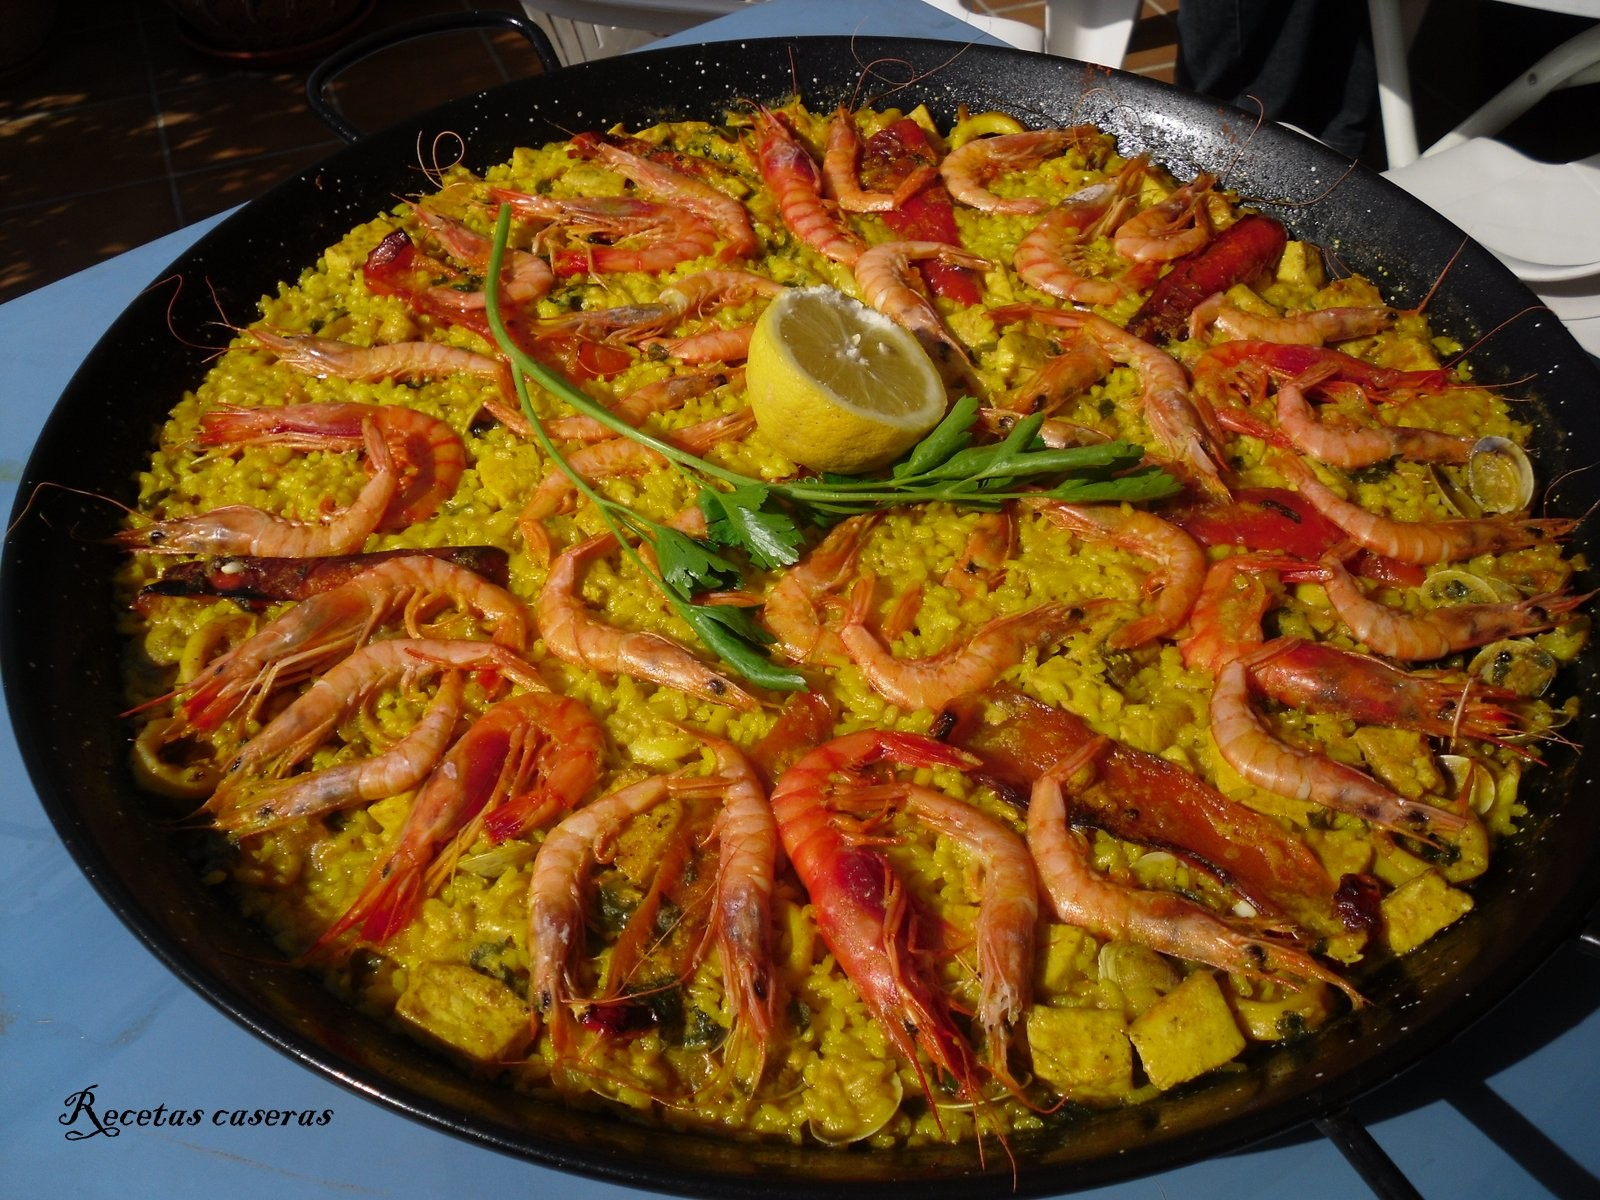 10 Of The Best Dishes From The Regions Of Murcia And Andalusia